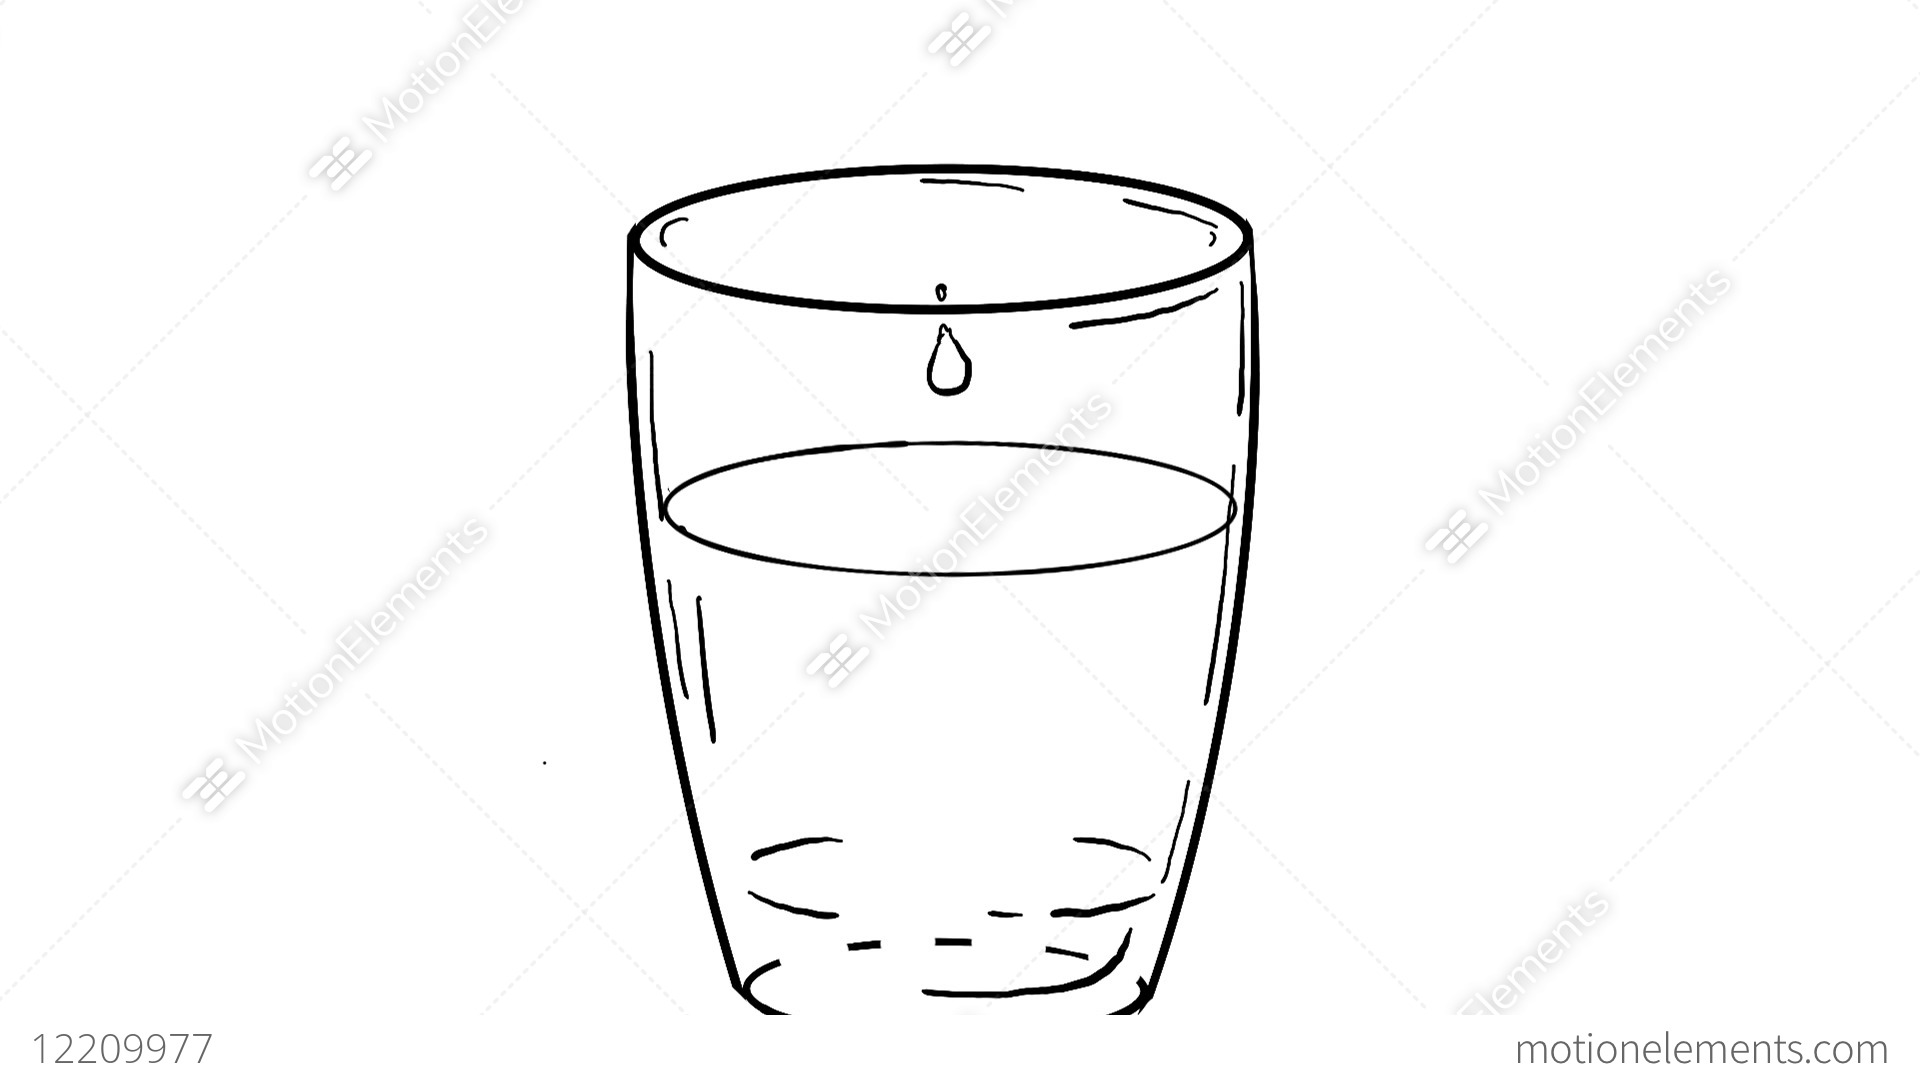 Drop Of Water Dripping On Glass Drawing 2d Animation Stock Animation